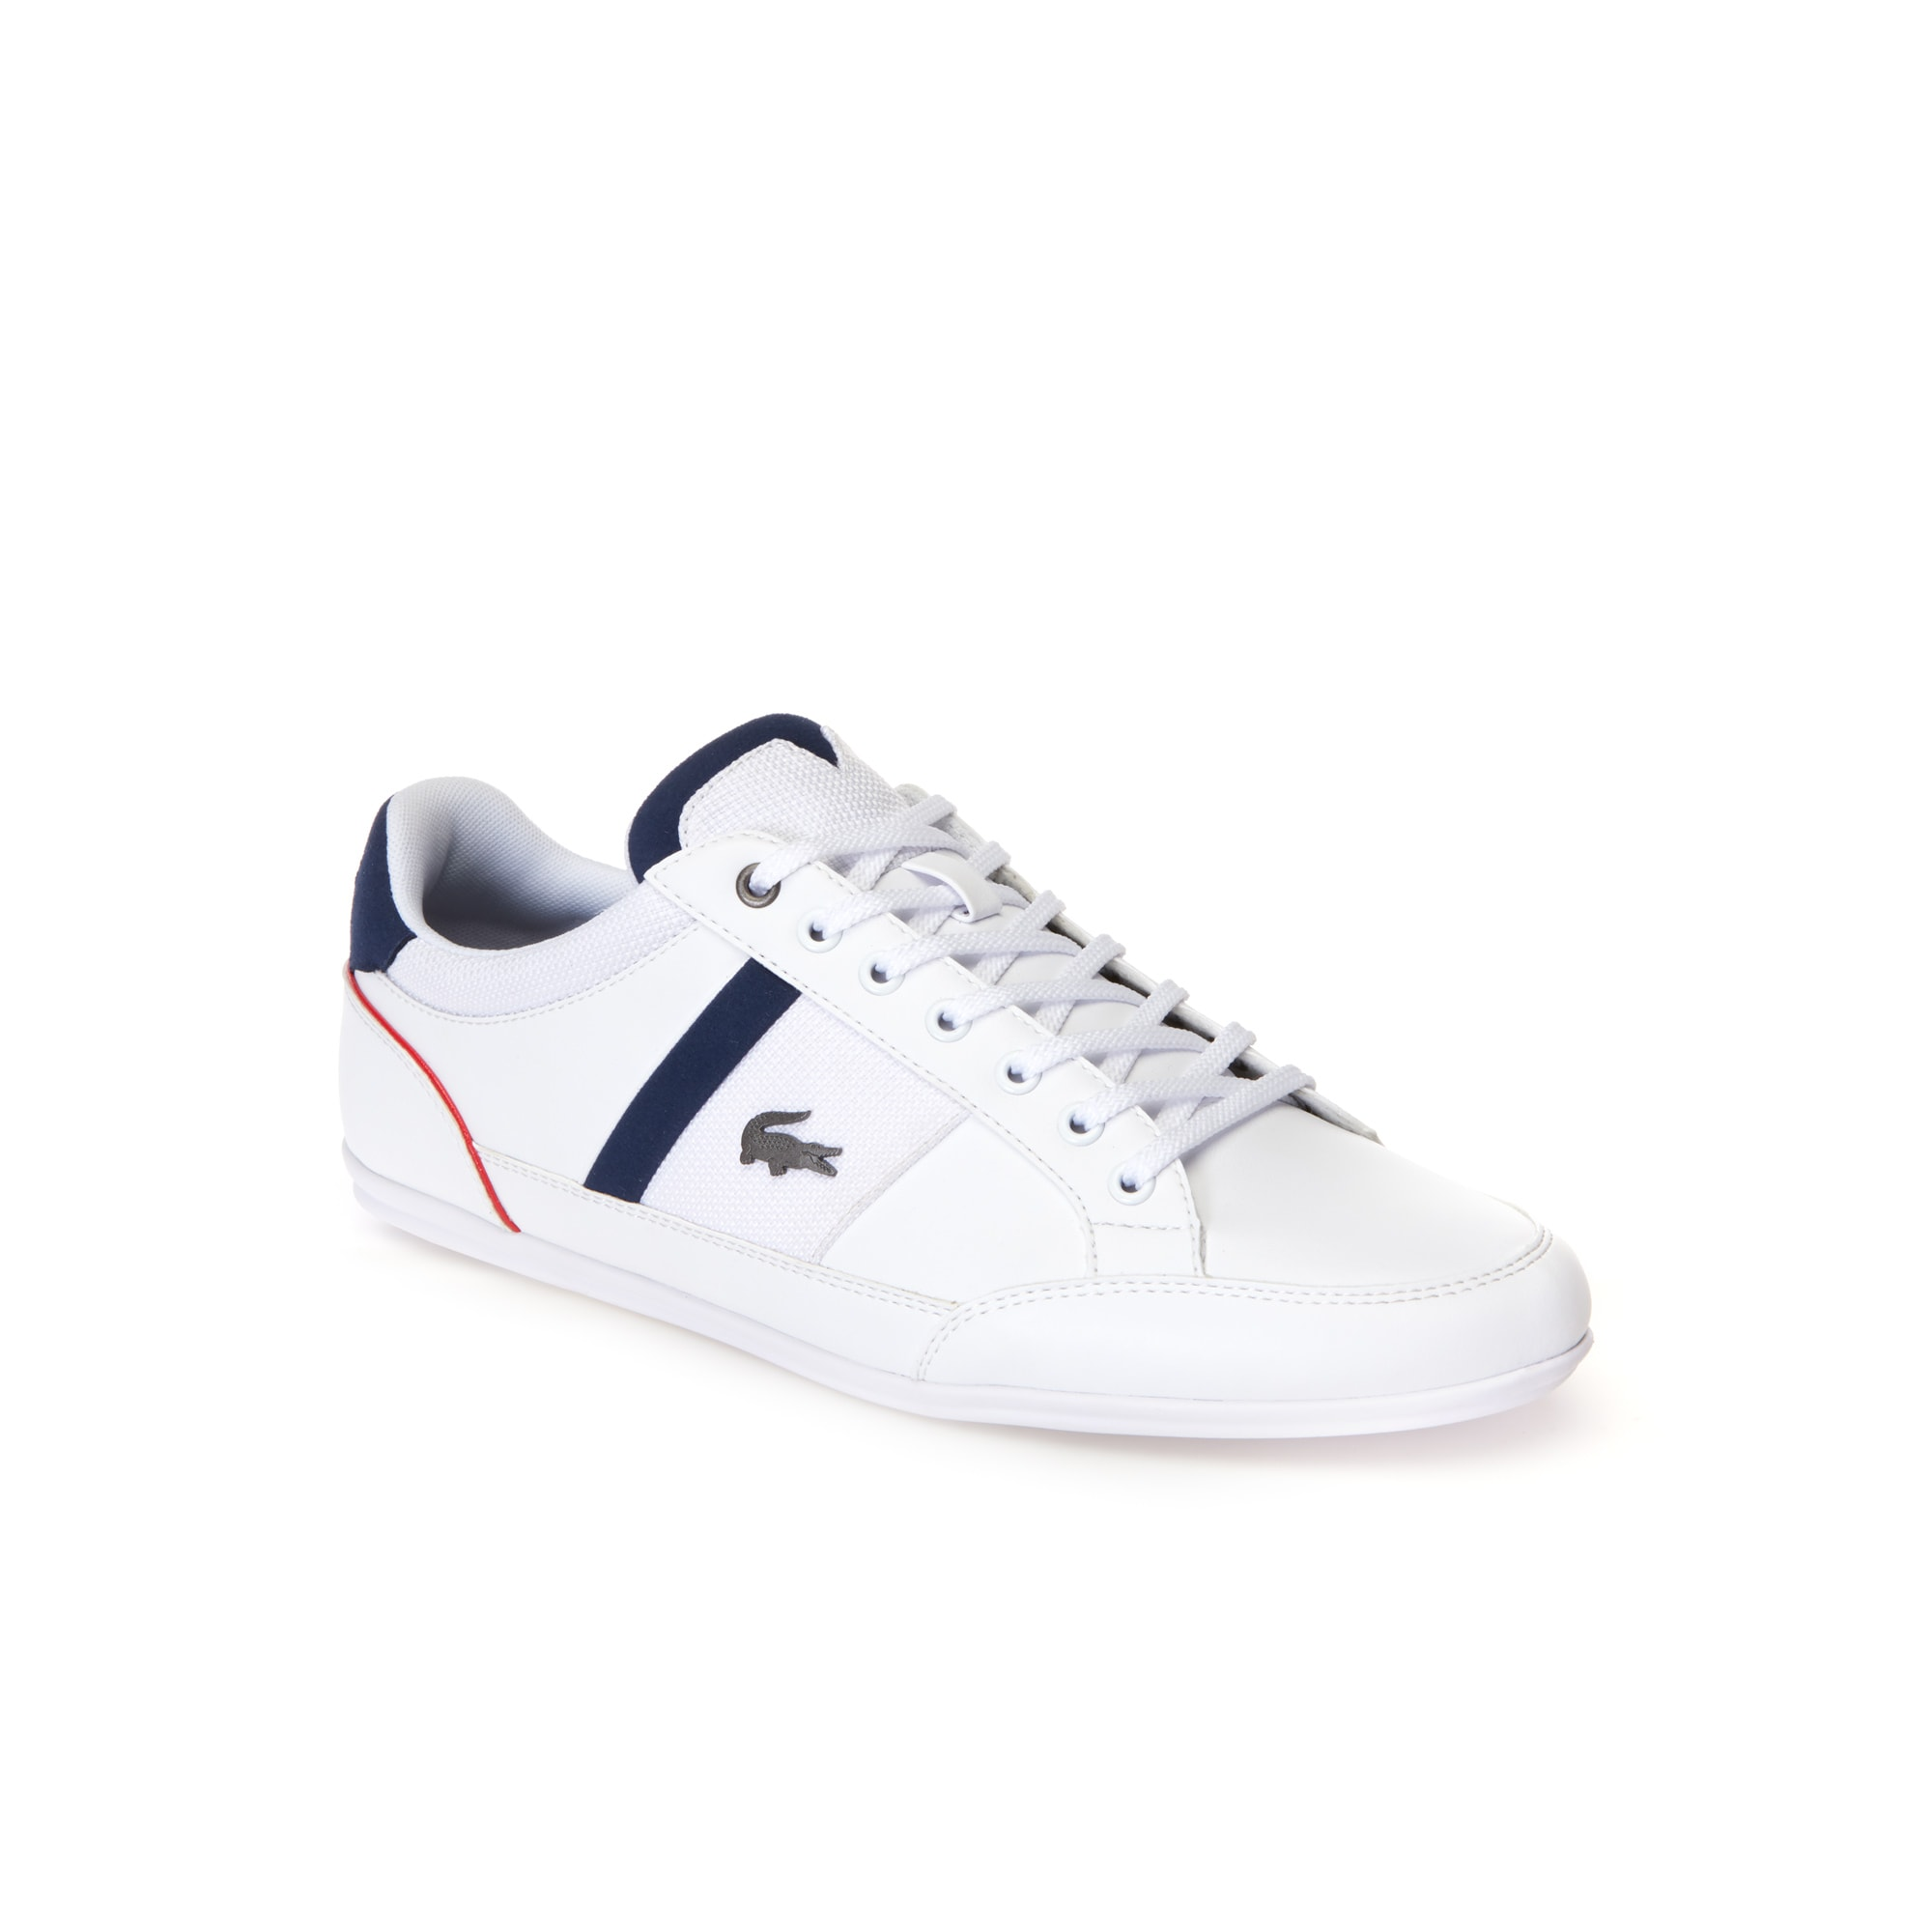 Men's Chaymon Nappa Leather and Mesh Trainers